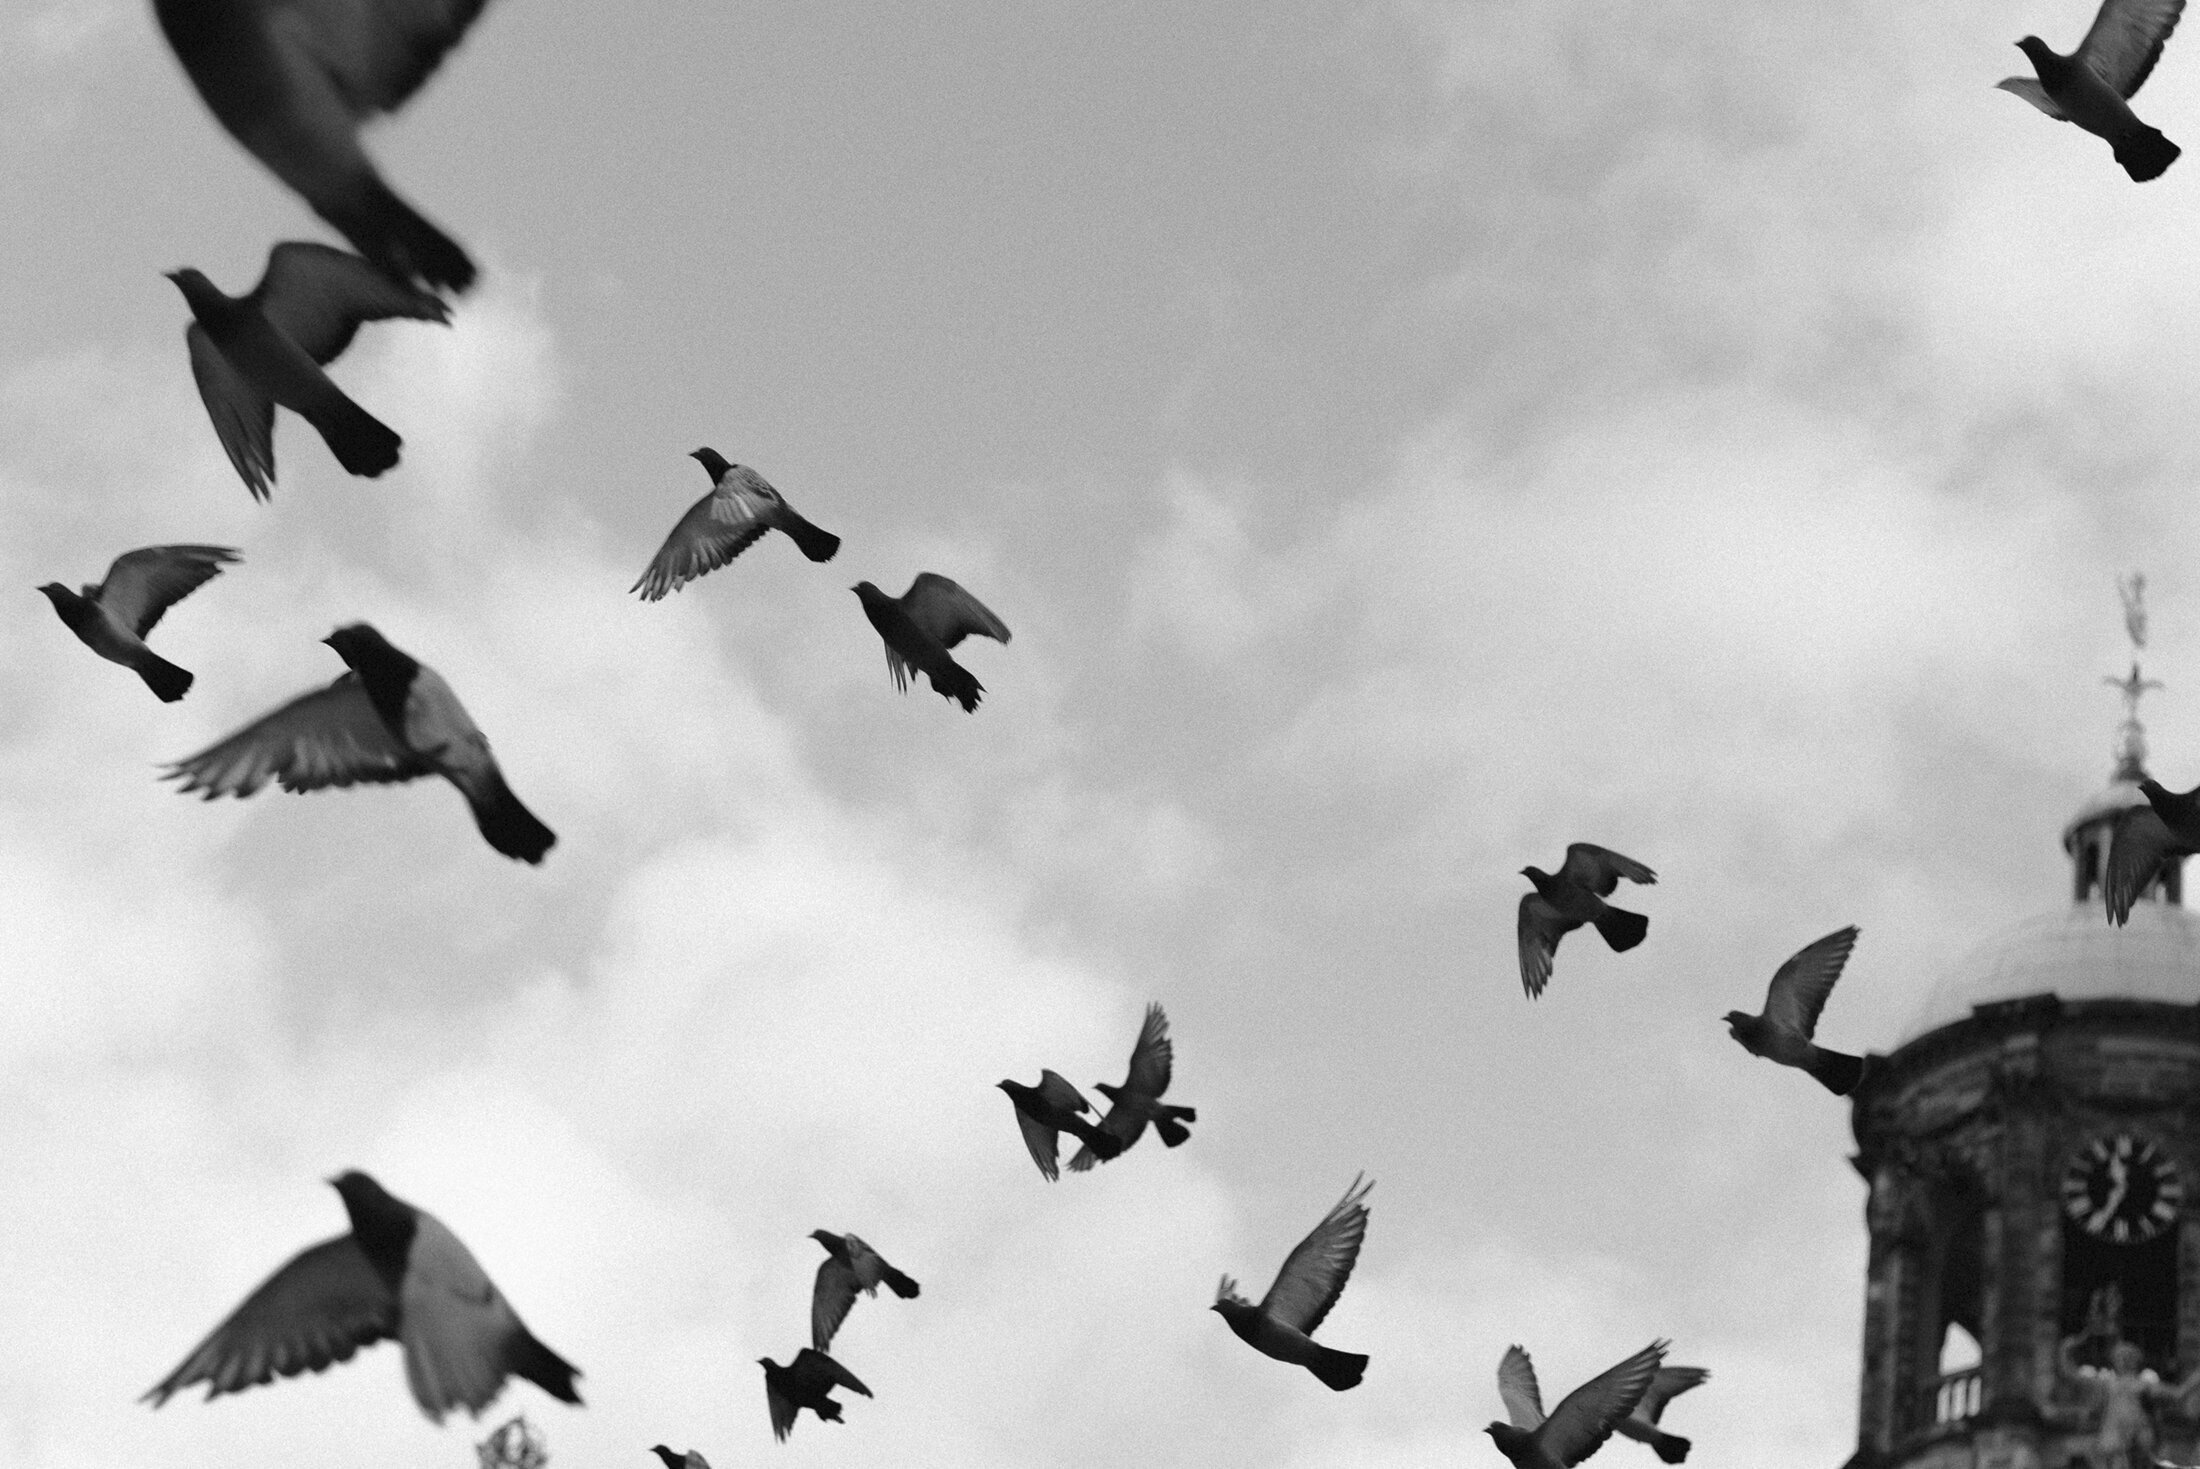 black and white photograph vintage birds flying